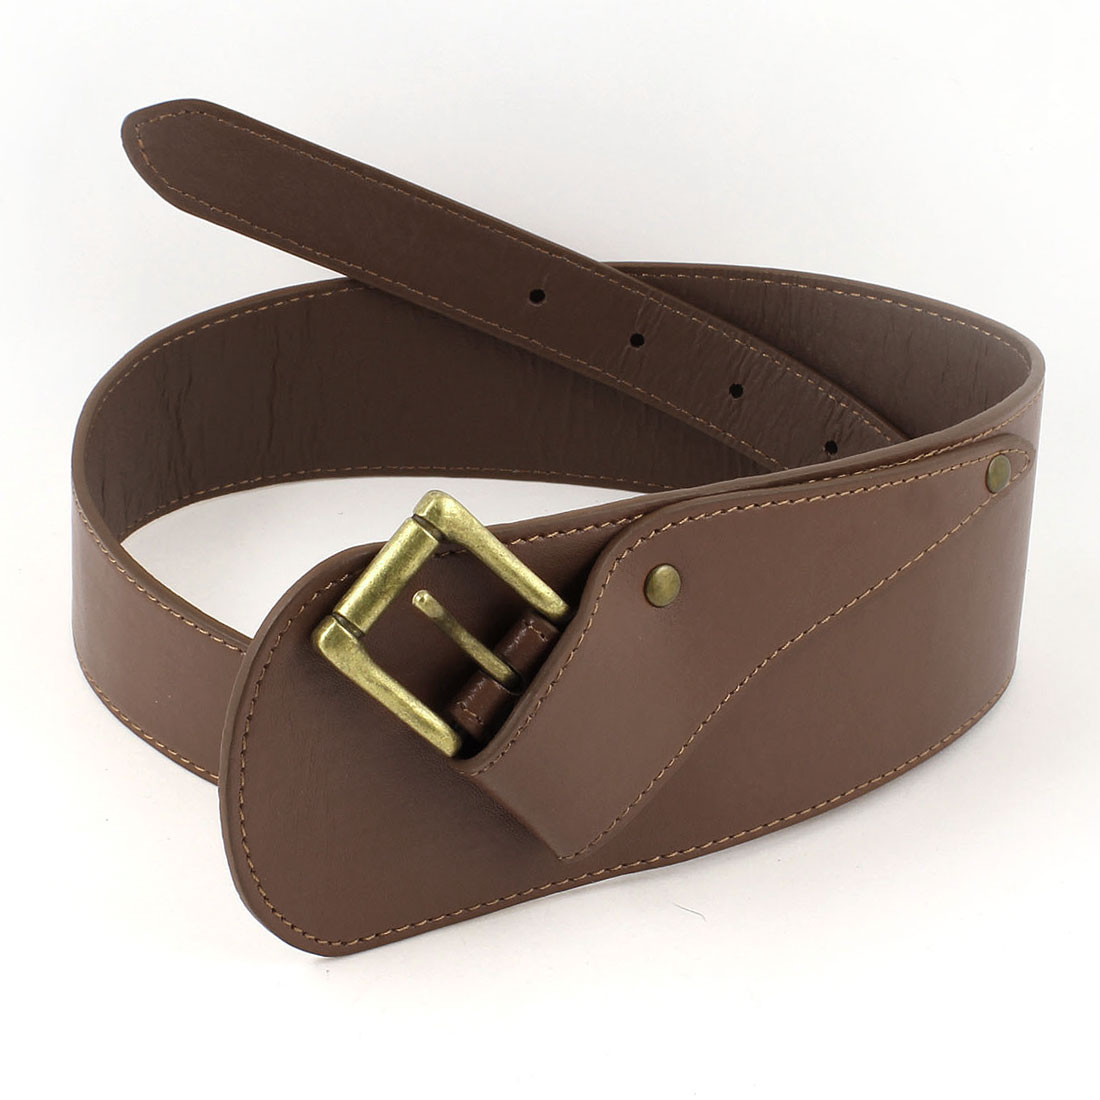 One Prong Buckle Adjustable Faux Leather Waist Belt Brown for Ladies